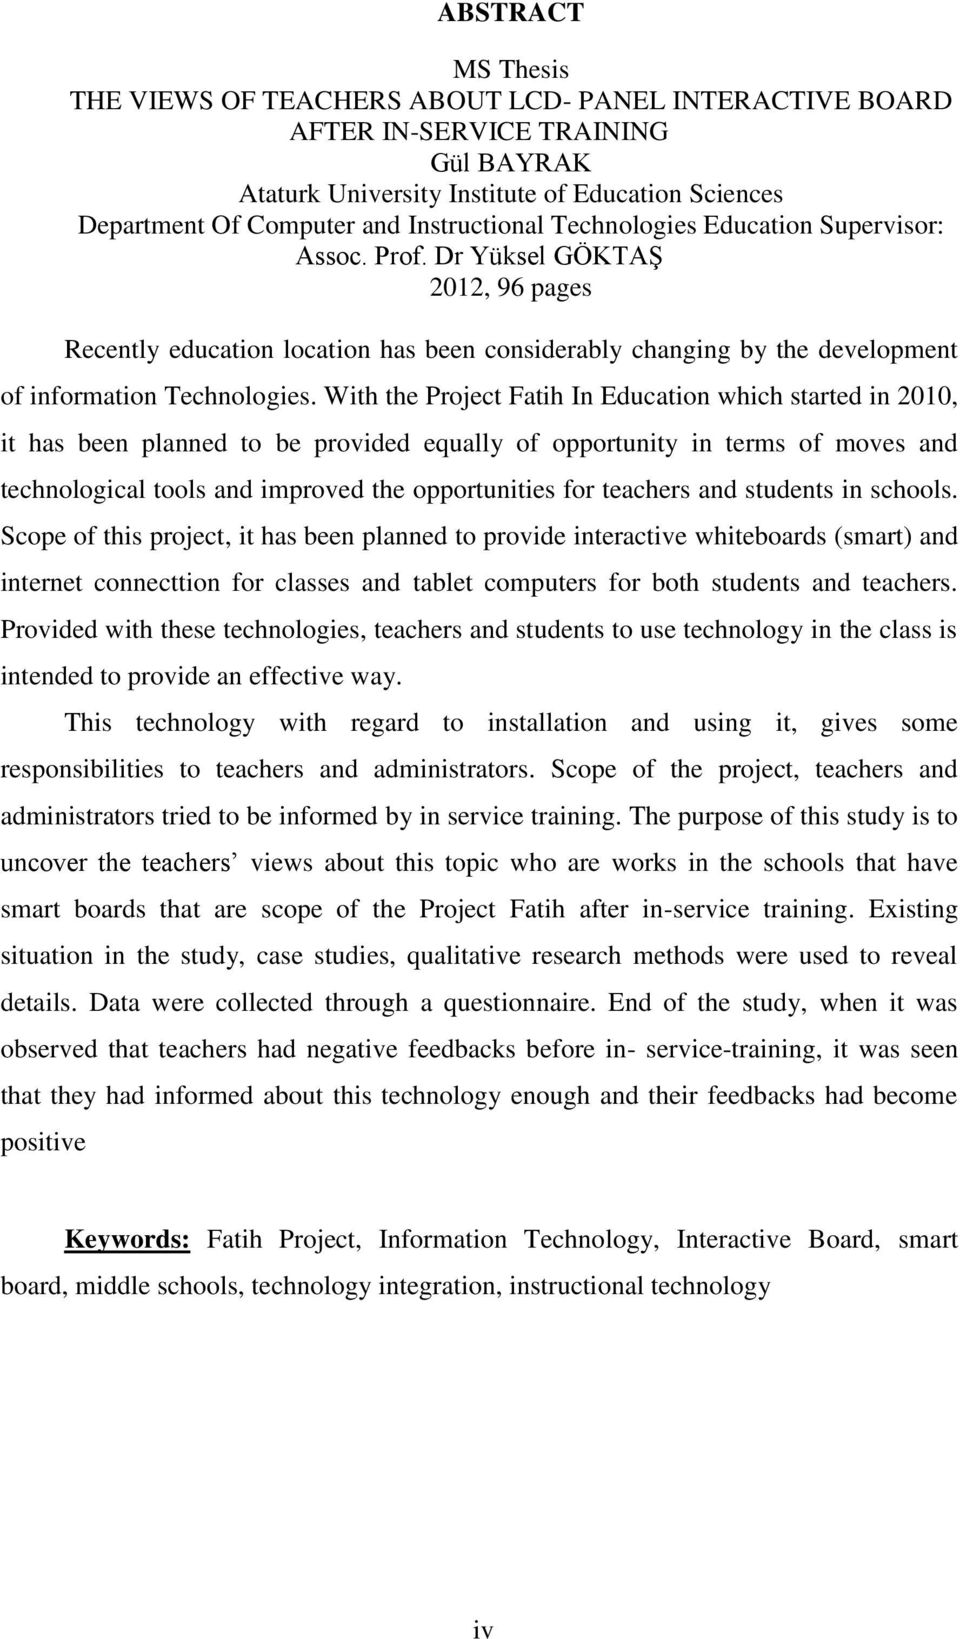 With the Project Fatih In Education which started in 2010, it has been planned to be provided equally of opportunity in terms of moves and technological tools and improved the opportunities for